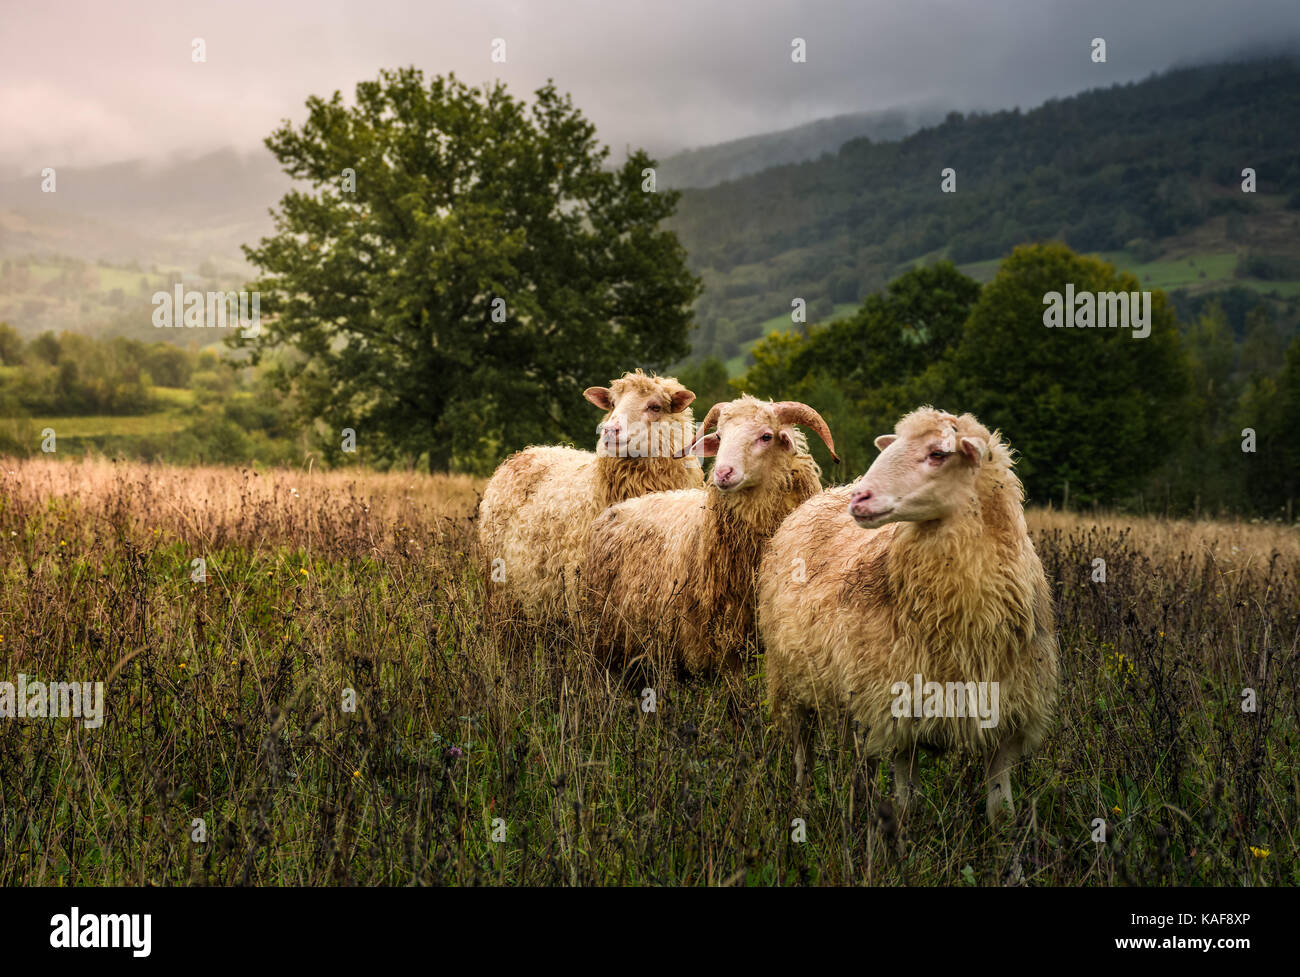 sheep grazing in a fog near old oak. beautiful scenery on rainy autumn day in mountainous rural area. three curious - Stock Image